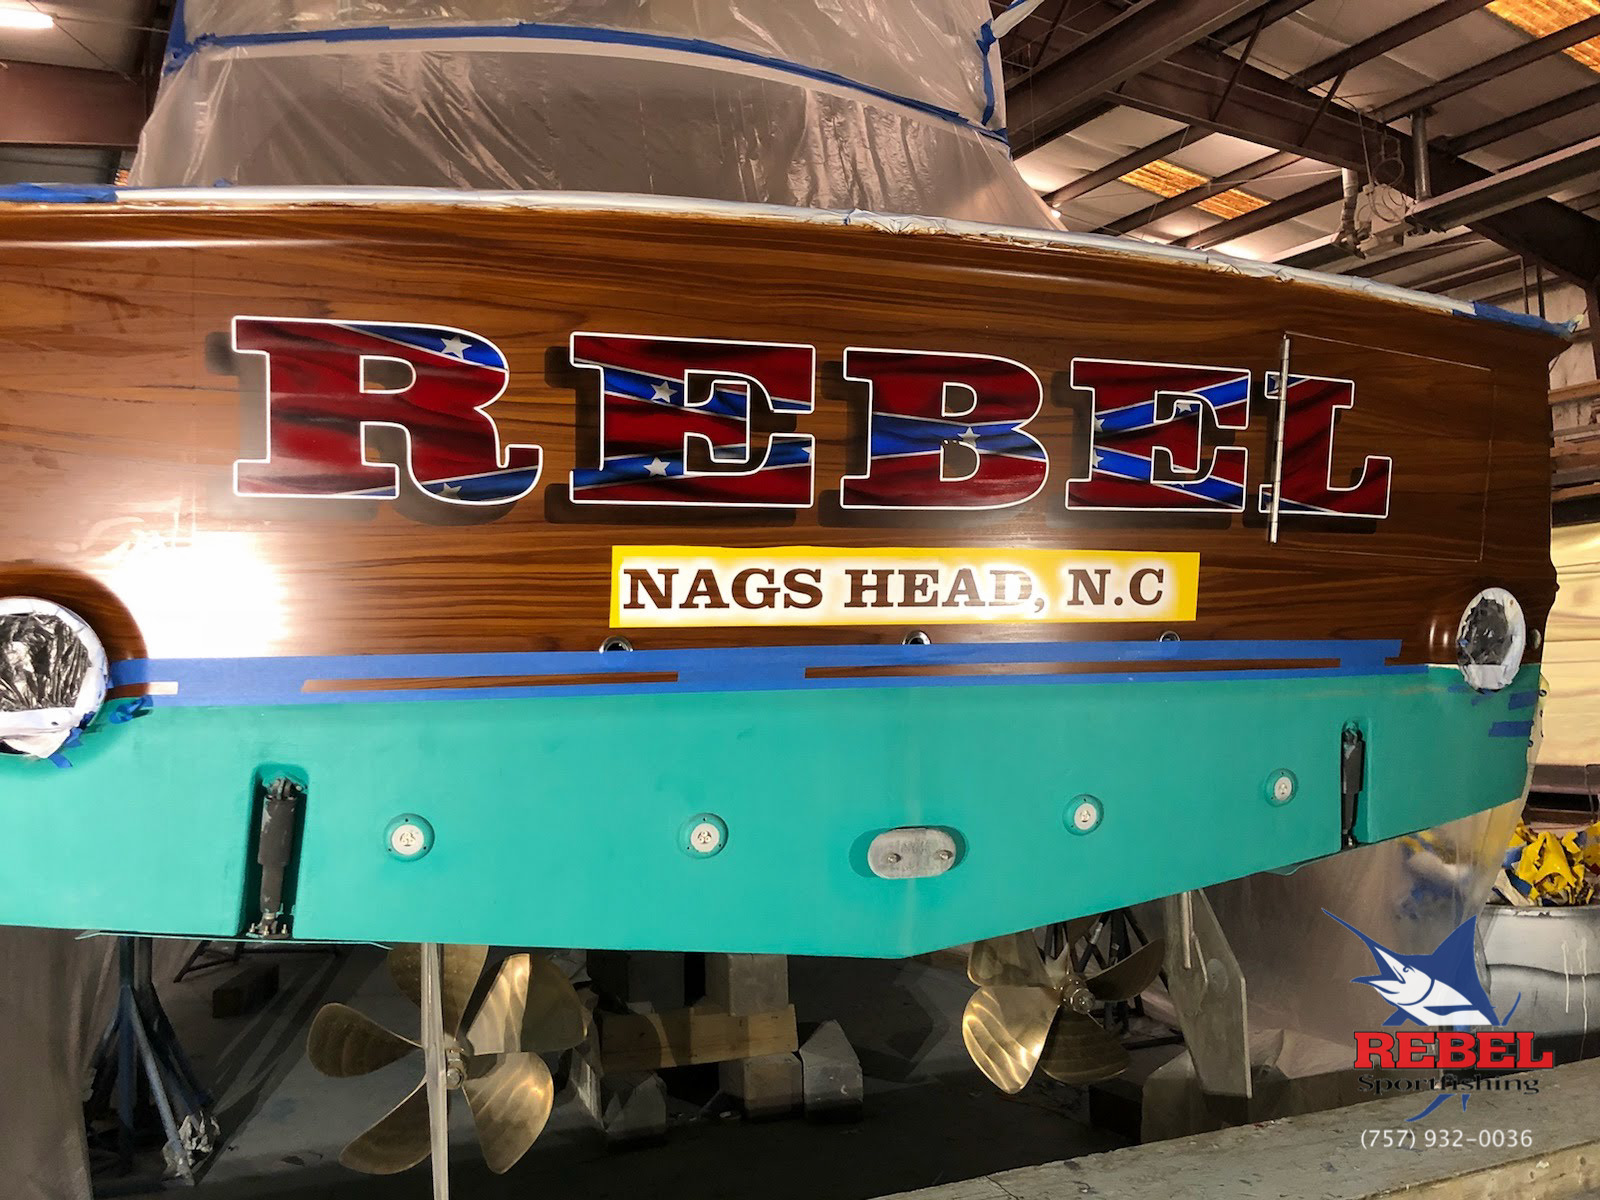 Rebel Sportfing Fishing Charters Custom Transom